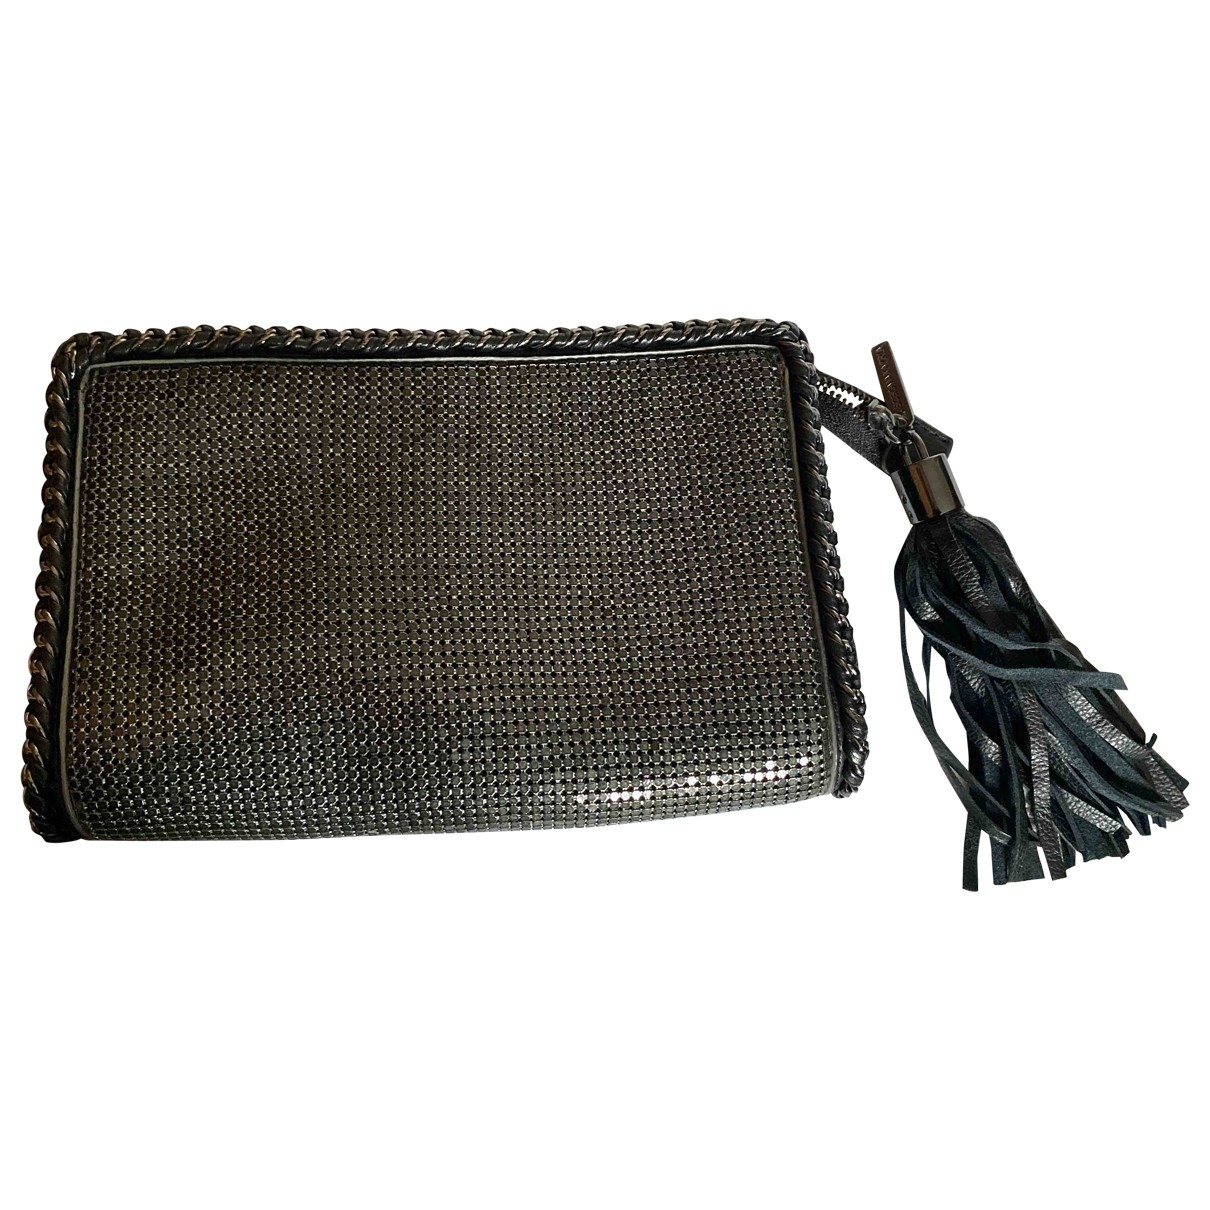 Bcbg Max Azria \N Clutch in  Metallic Synthetik